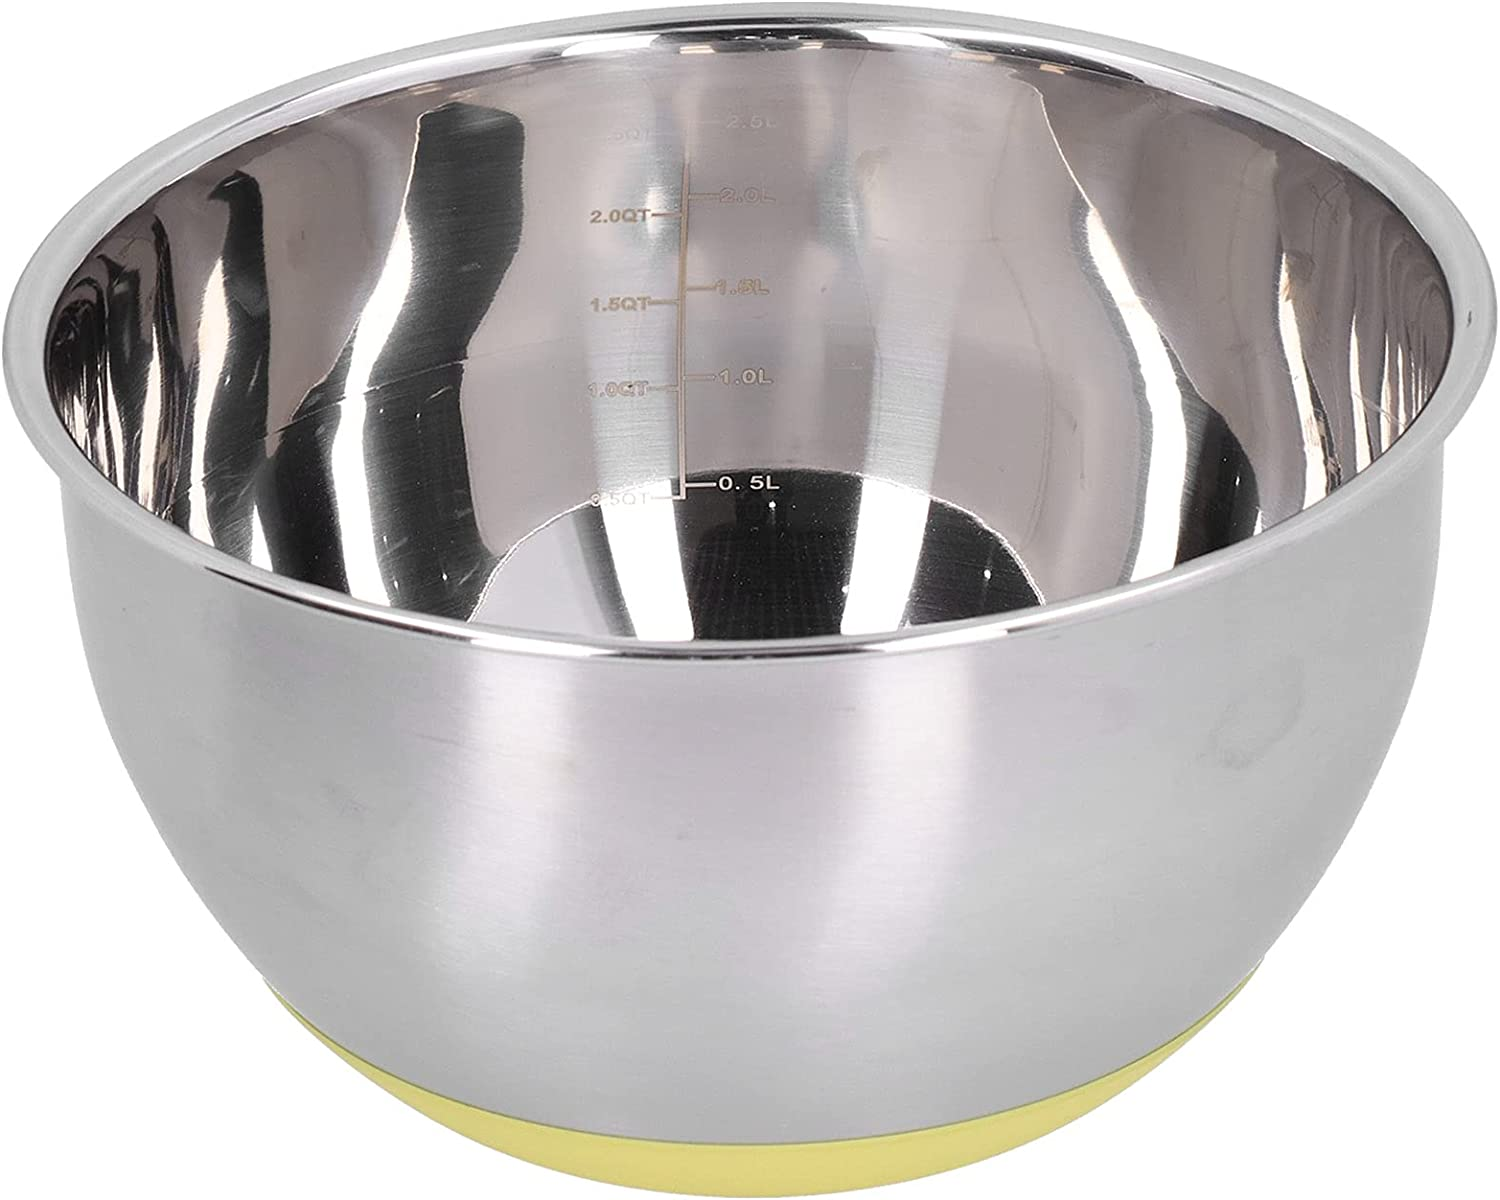 Chen-love1 Metal Mixing Bowl Long Beach specialty shop Mall Egg and Beating Scale Wi with